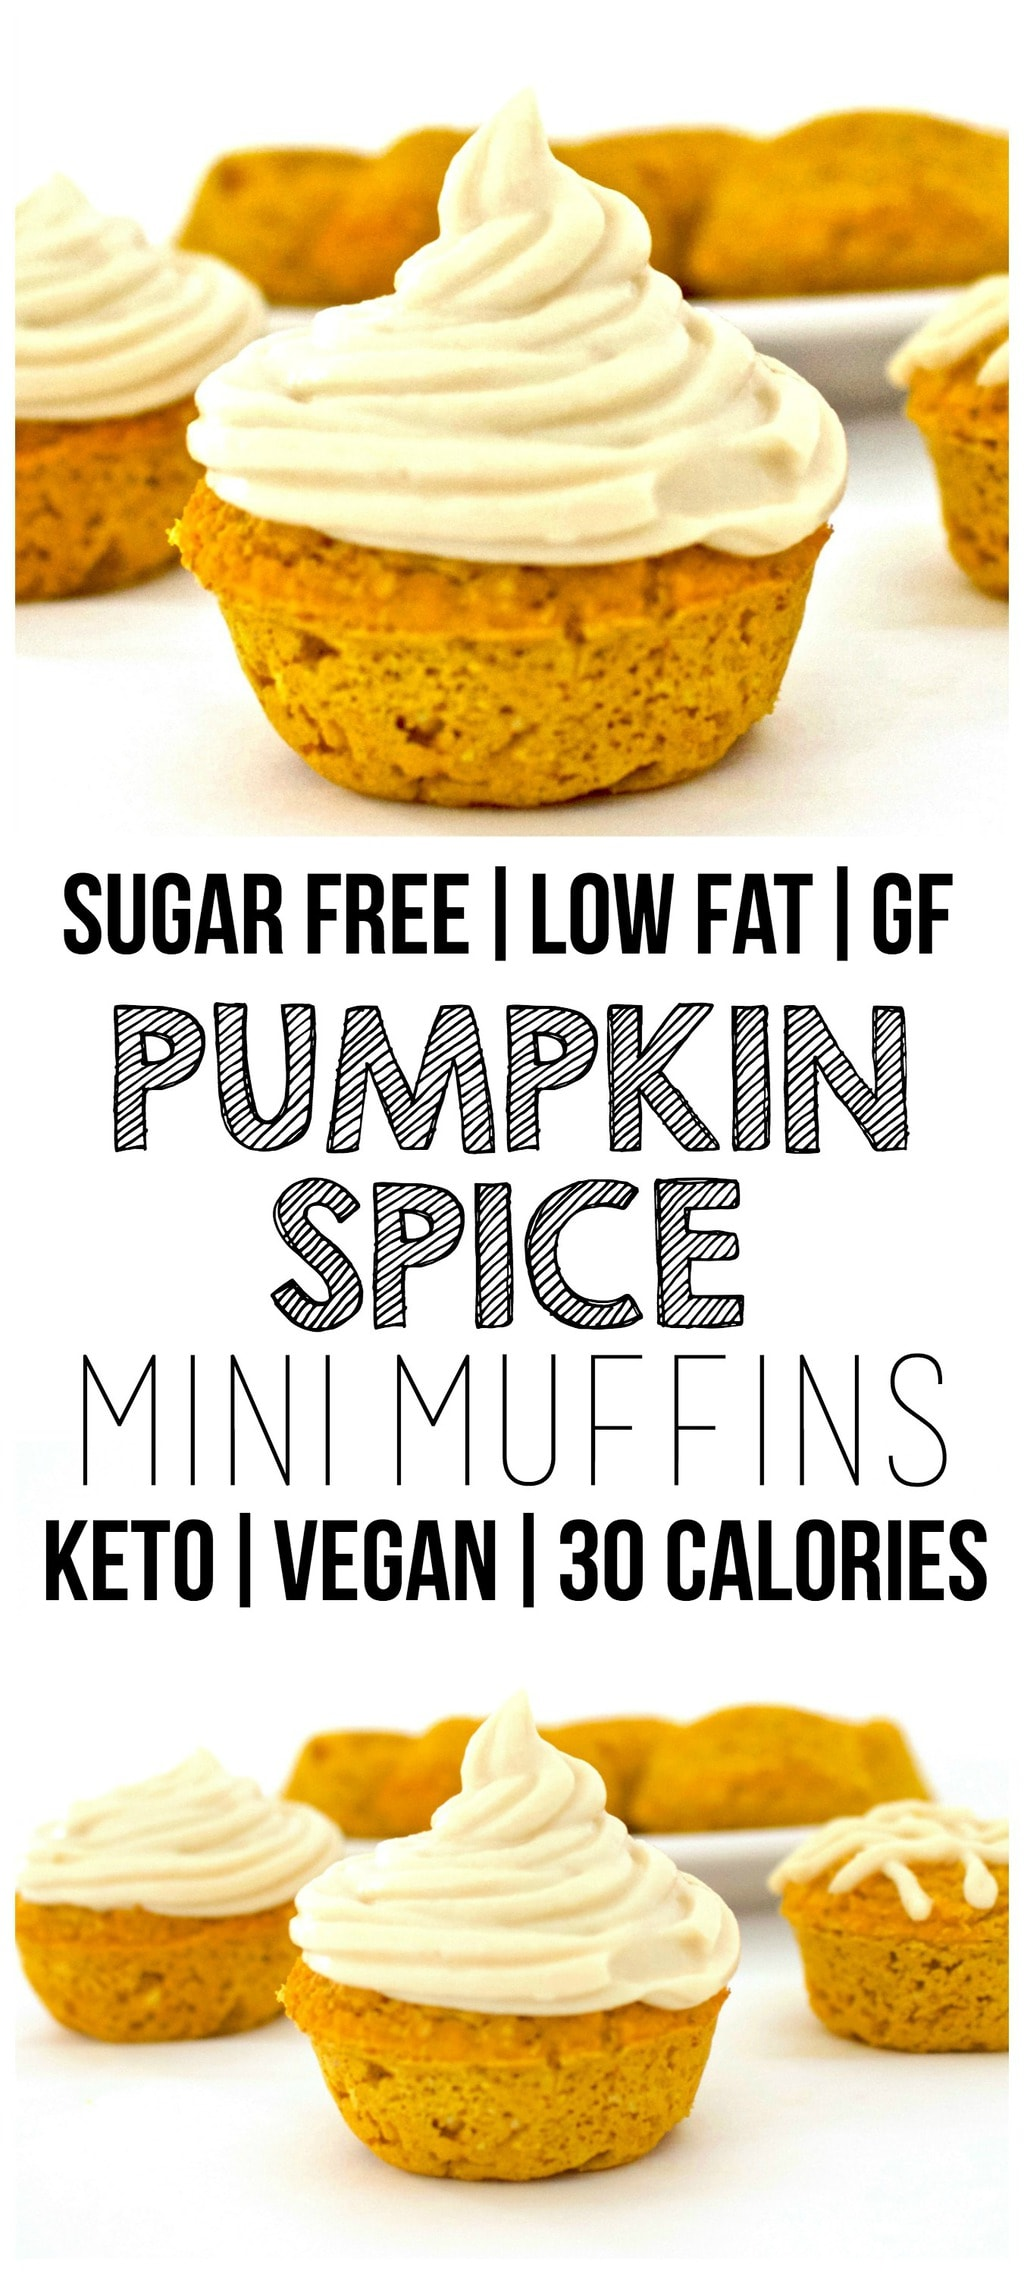 These cute little Pumpkin Spice Mini Muffins are so yummy!! The perfect, bite-sized Fall treat. Super low-calorie and totally healthy, yet they taste absolutely amazing. Vegan, keto, sugar-free, dairy-free, oil-free, gluten-free, low-carb, and low-fat.